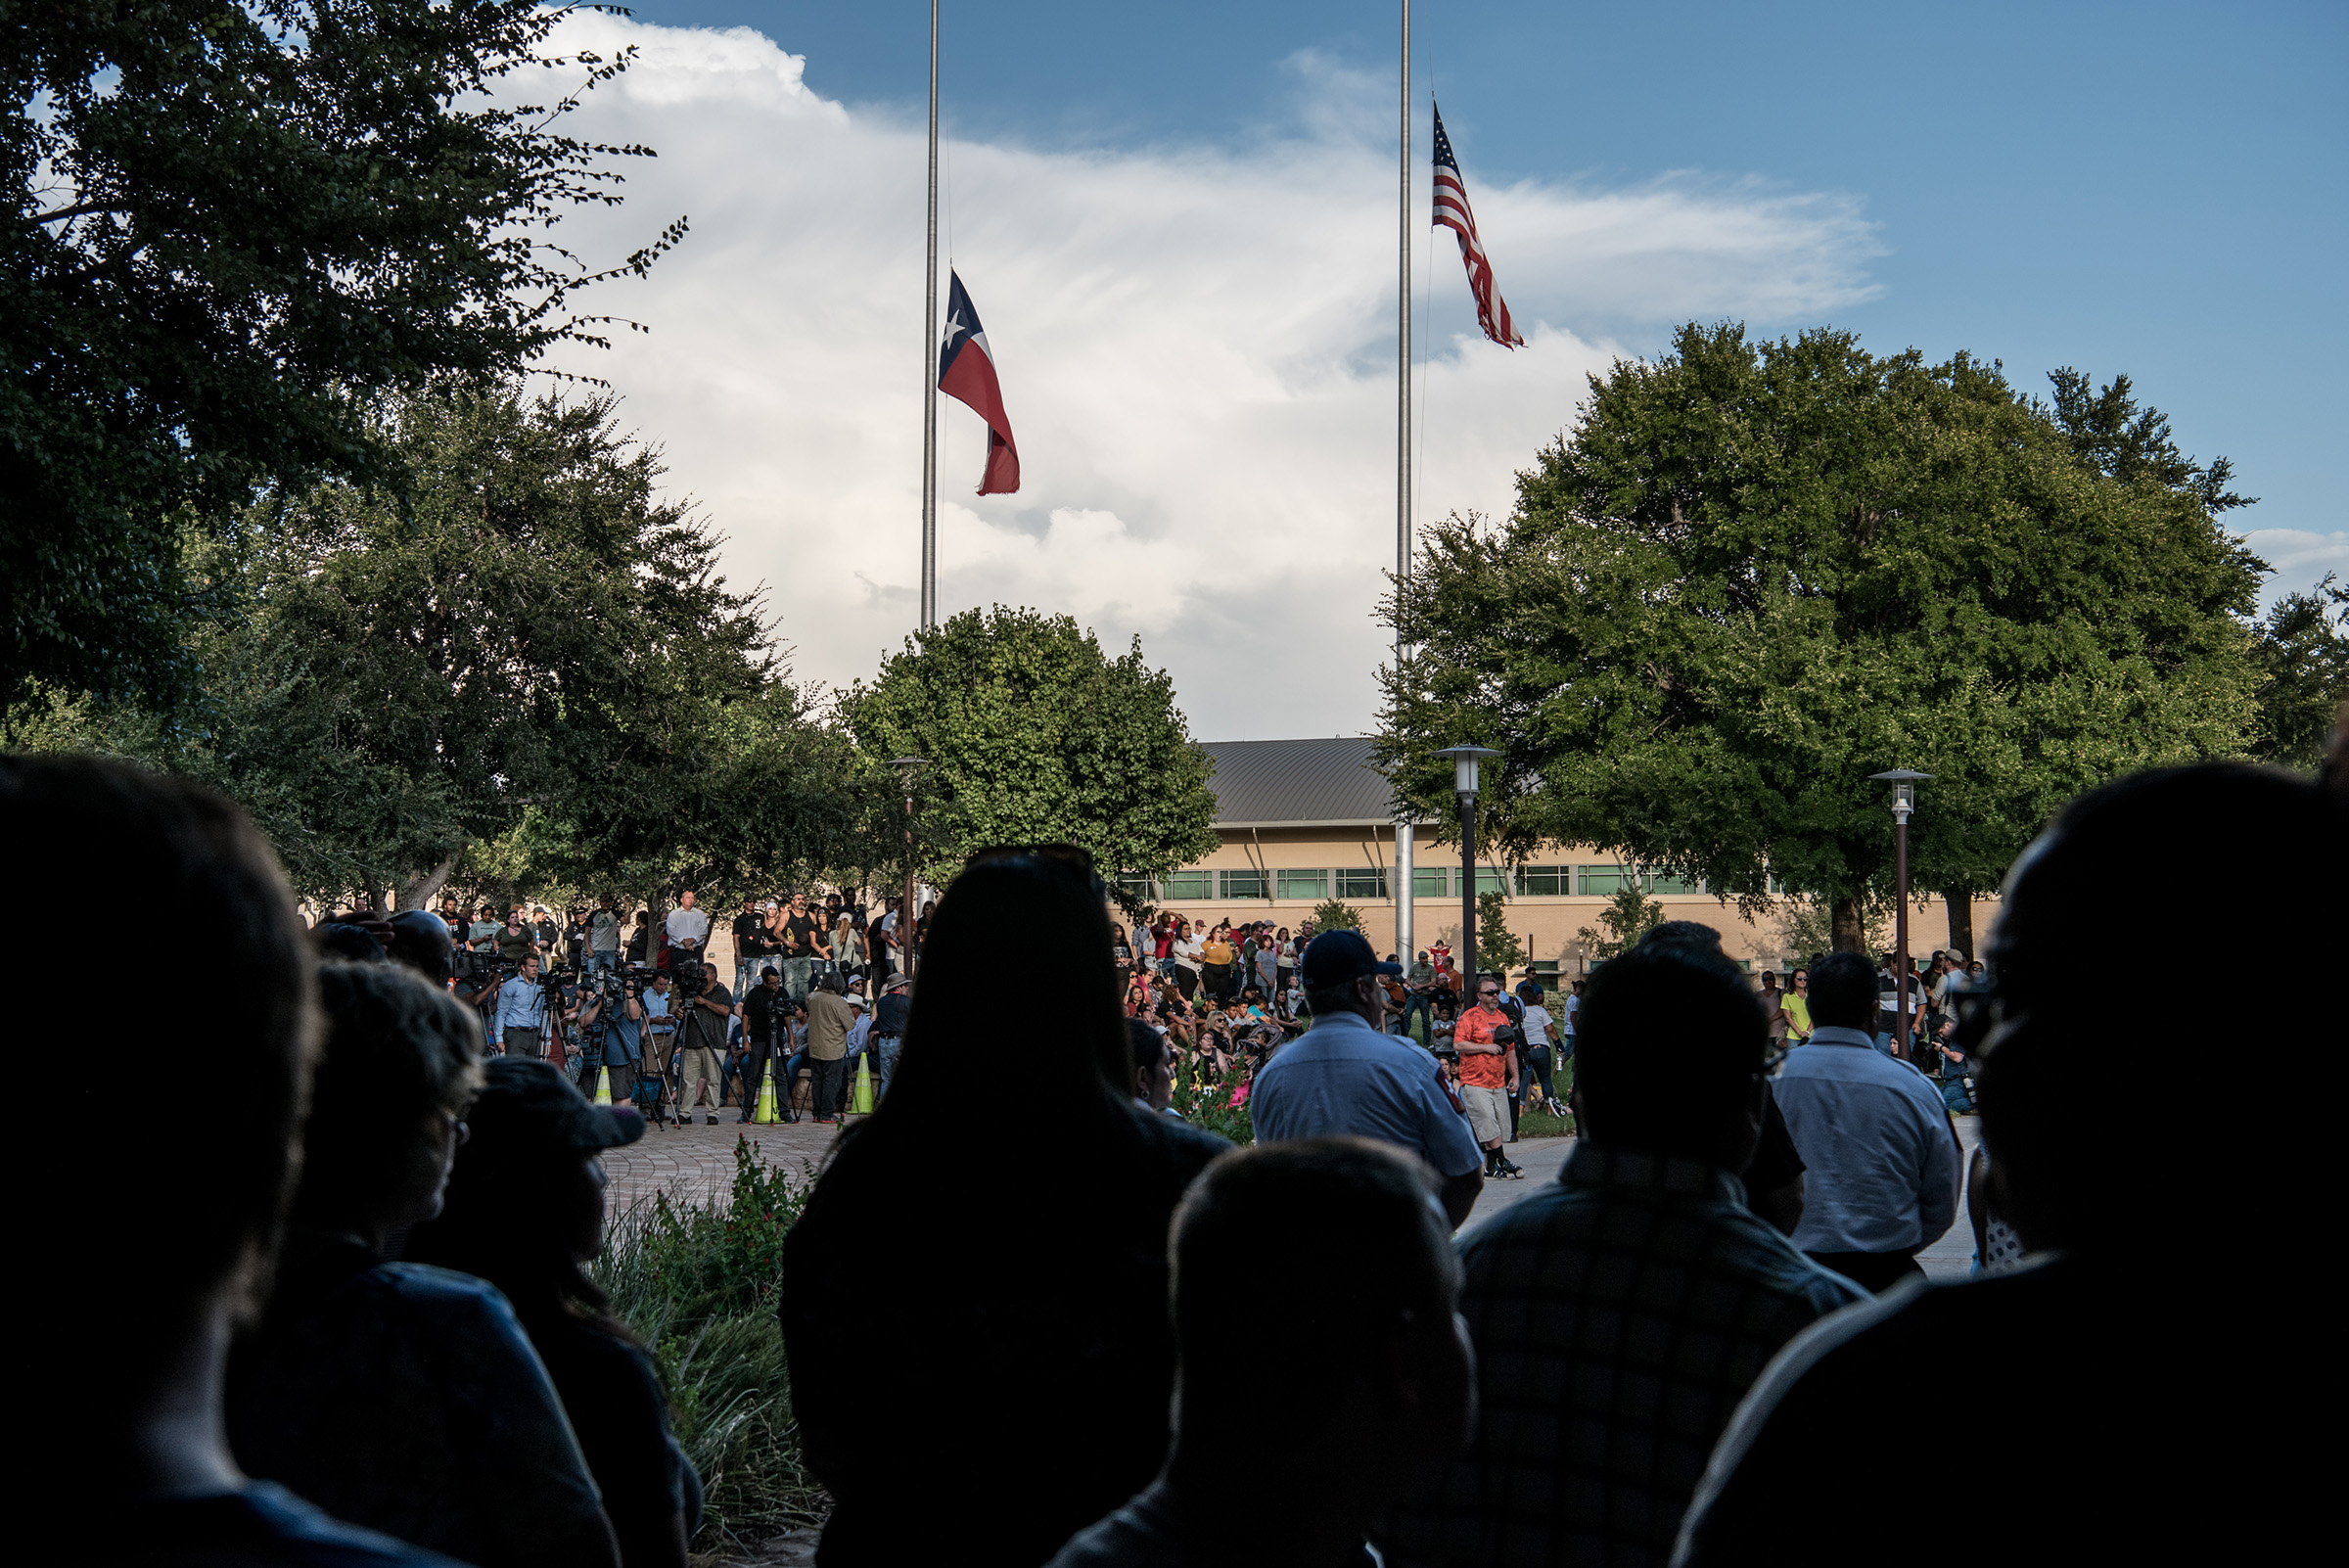 Flags fly at half mast over a prayer vigil at the University of Texas of the Permian Basin for the victims of a mass shooting in Odessa, TX, on Sept. 1, 2019.